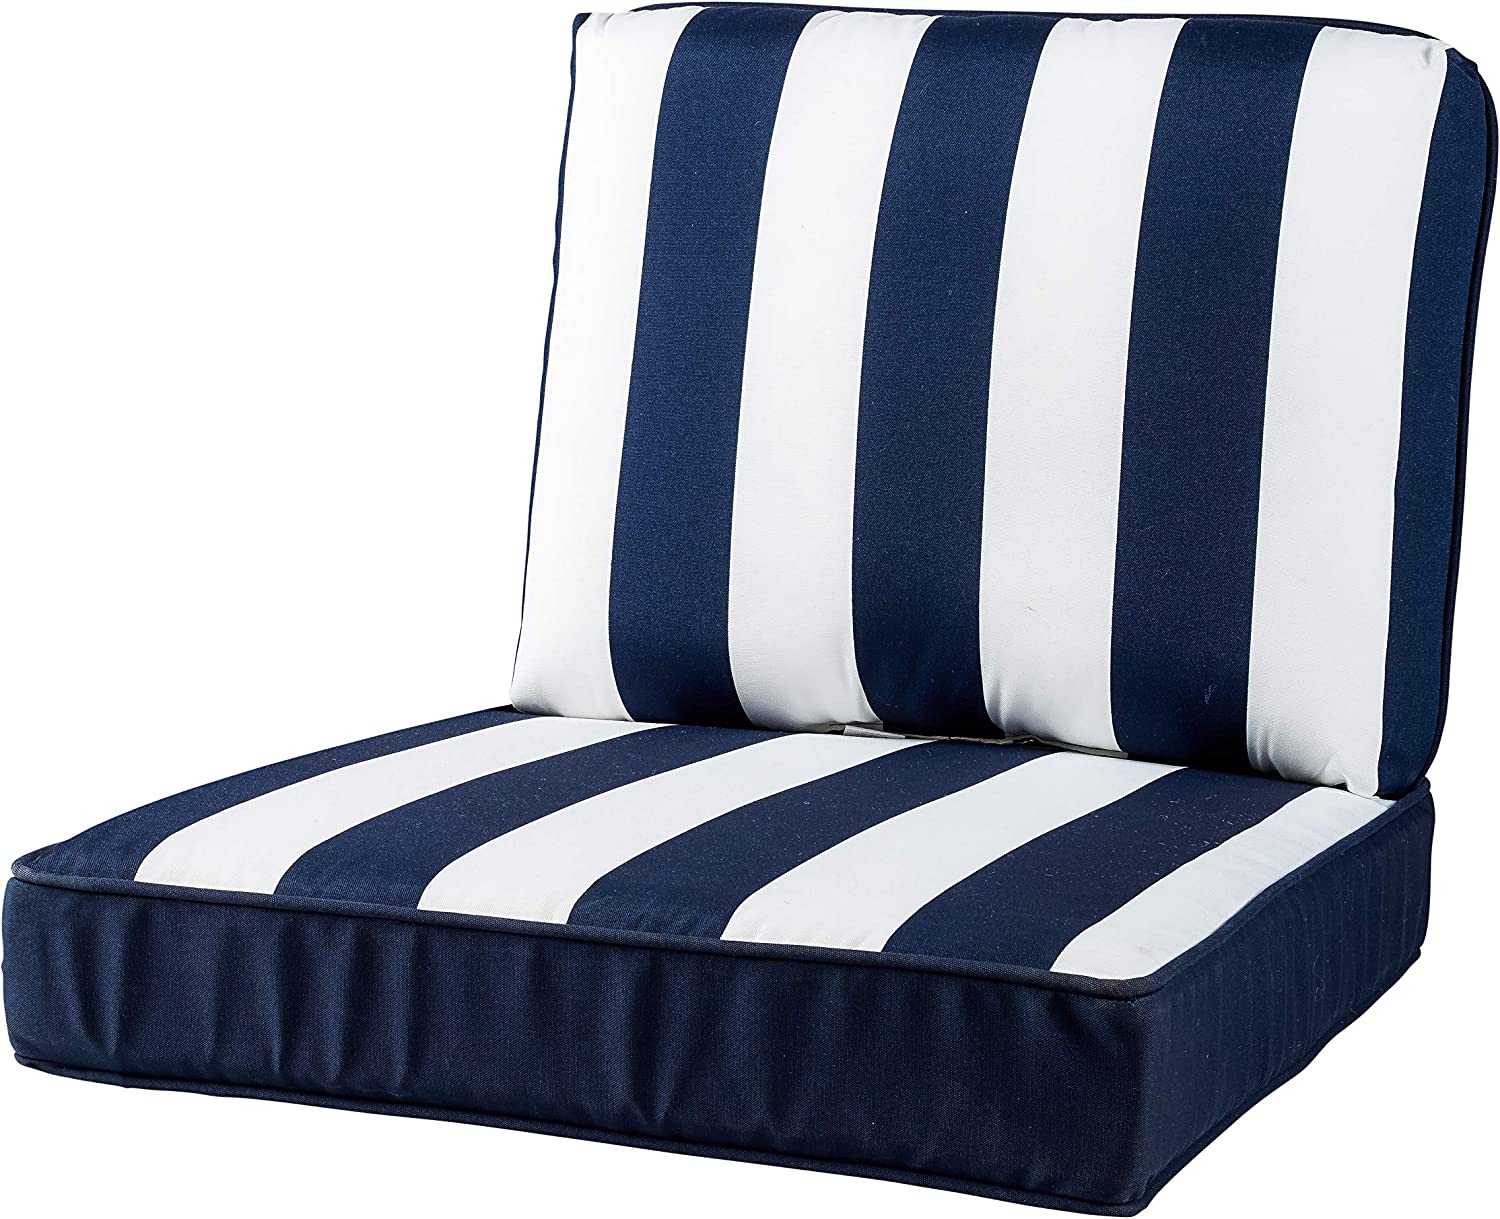 Quality Outdoor Living 29-NVS23SB Chair Cushion low-pricing x 23 W 26 Navy Cheap mail order shopping